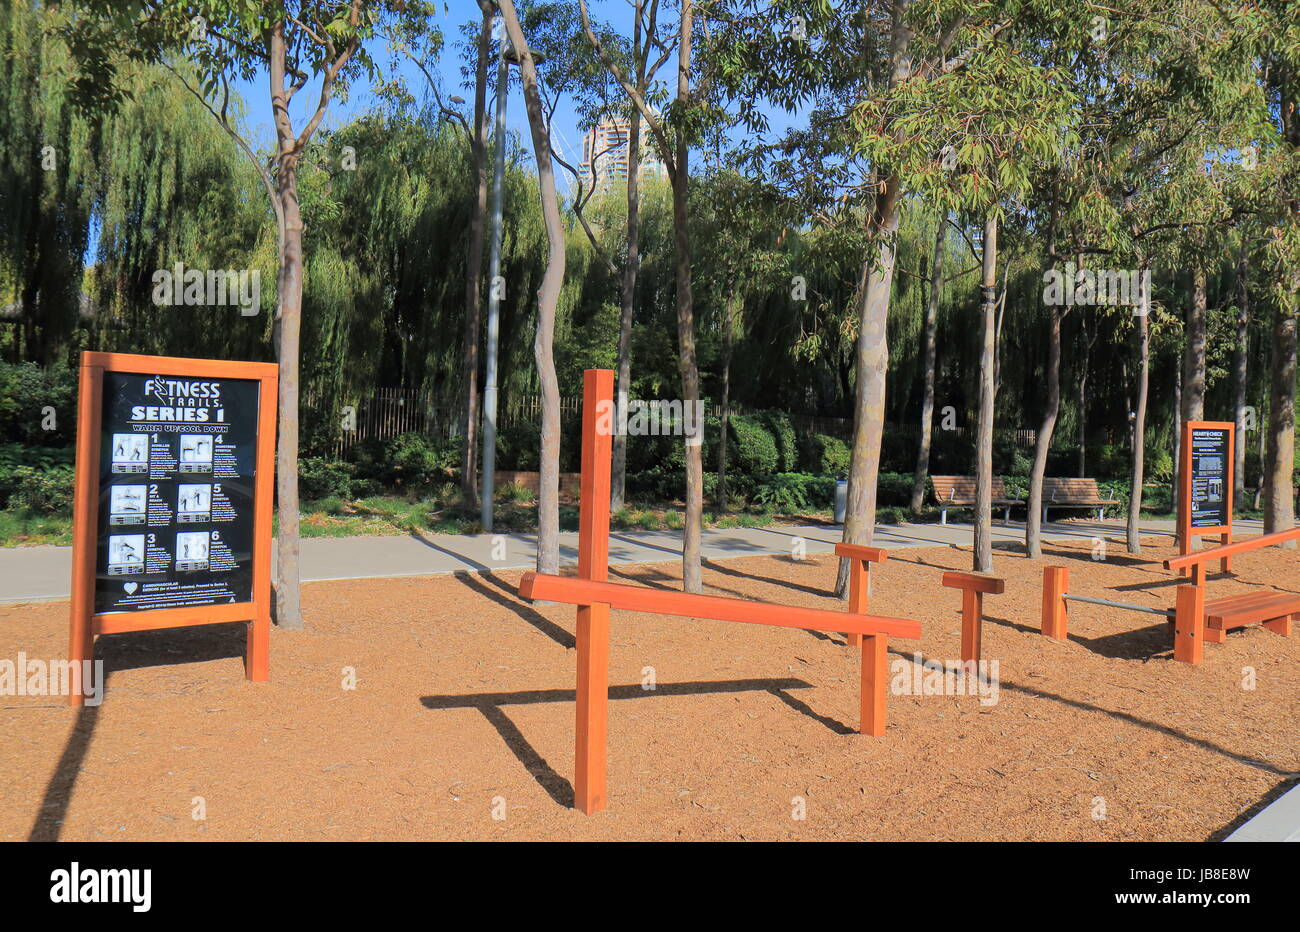 Exercise equipment at Tumbalong park in downtown Sydney Australia. - Stock Image